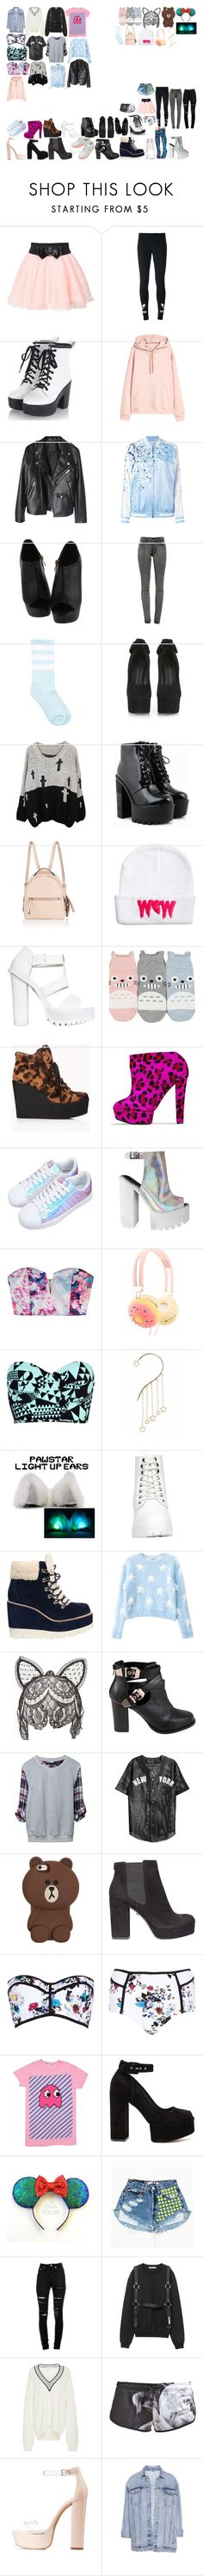 """Packing for Tour"" by kaelighoffical ❤ liked on Polyvore featuring adidas Originals, P.A.R.O.S.H., J Brand, Giuseppe Zanotti, Fendi, Nly Shoes, Forever 21, Senso, Asilio and claire's"